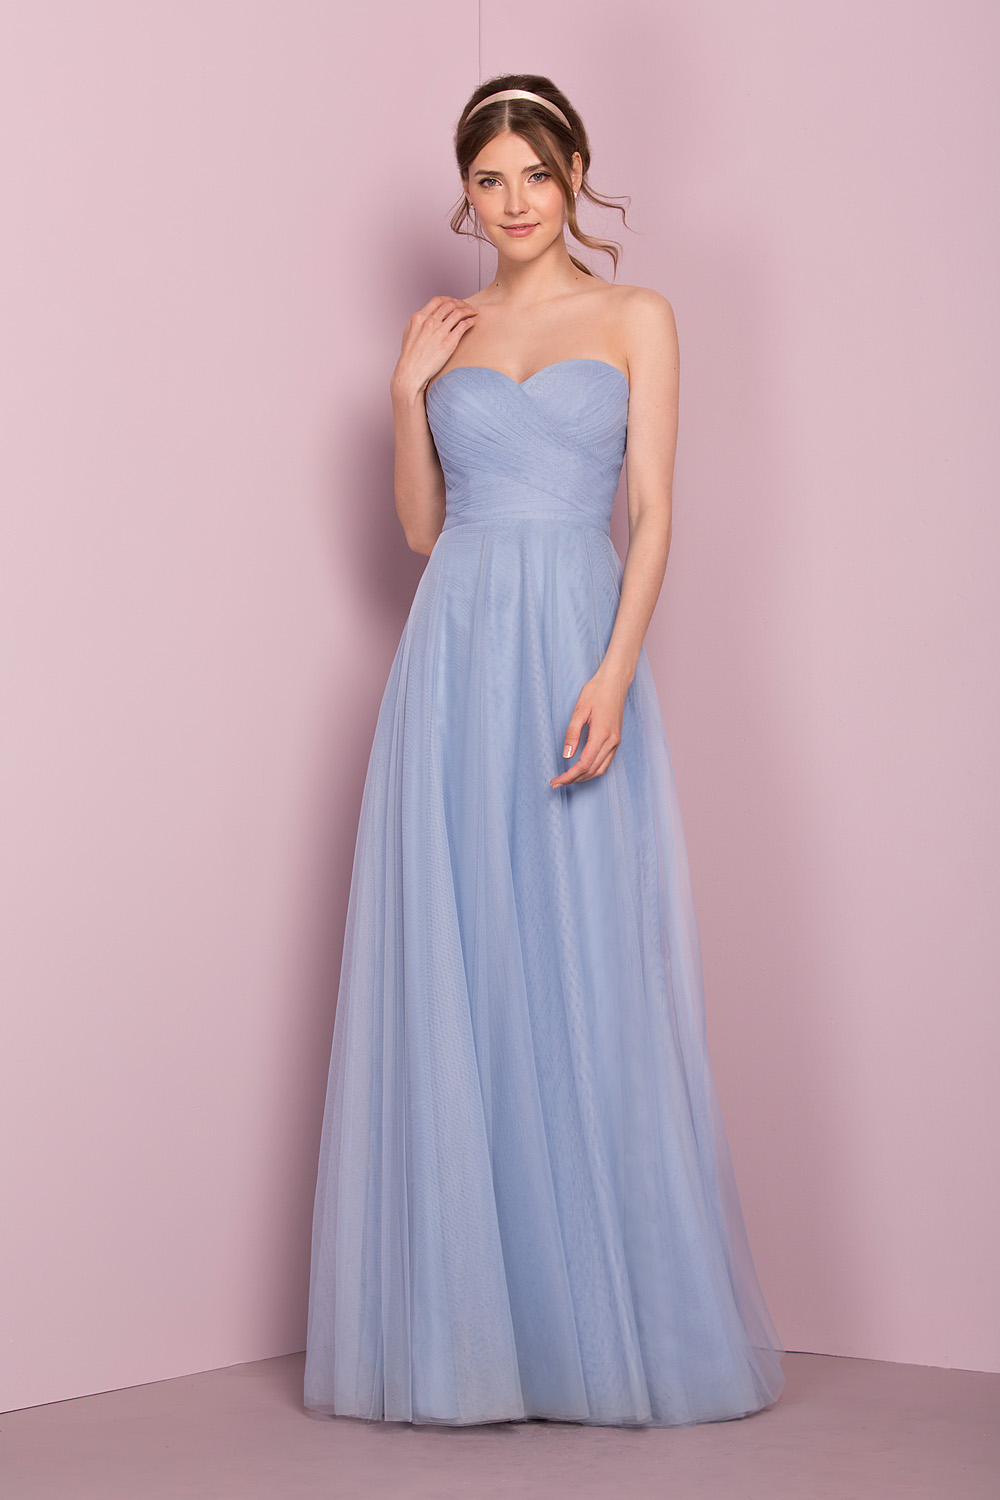 STYLE 18614 : TULLE SWEETHEART